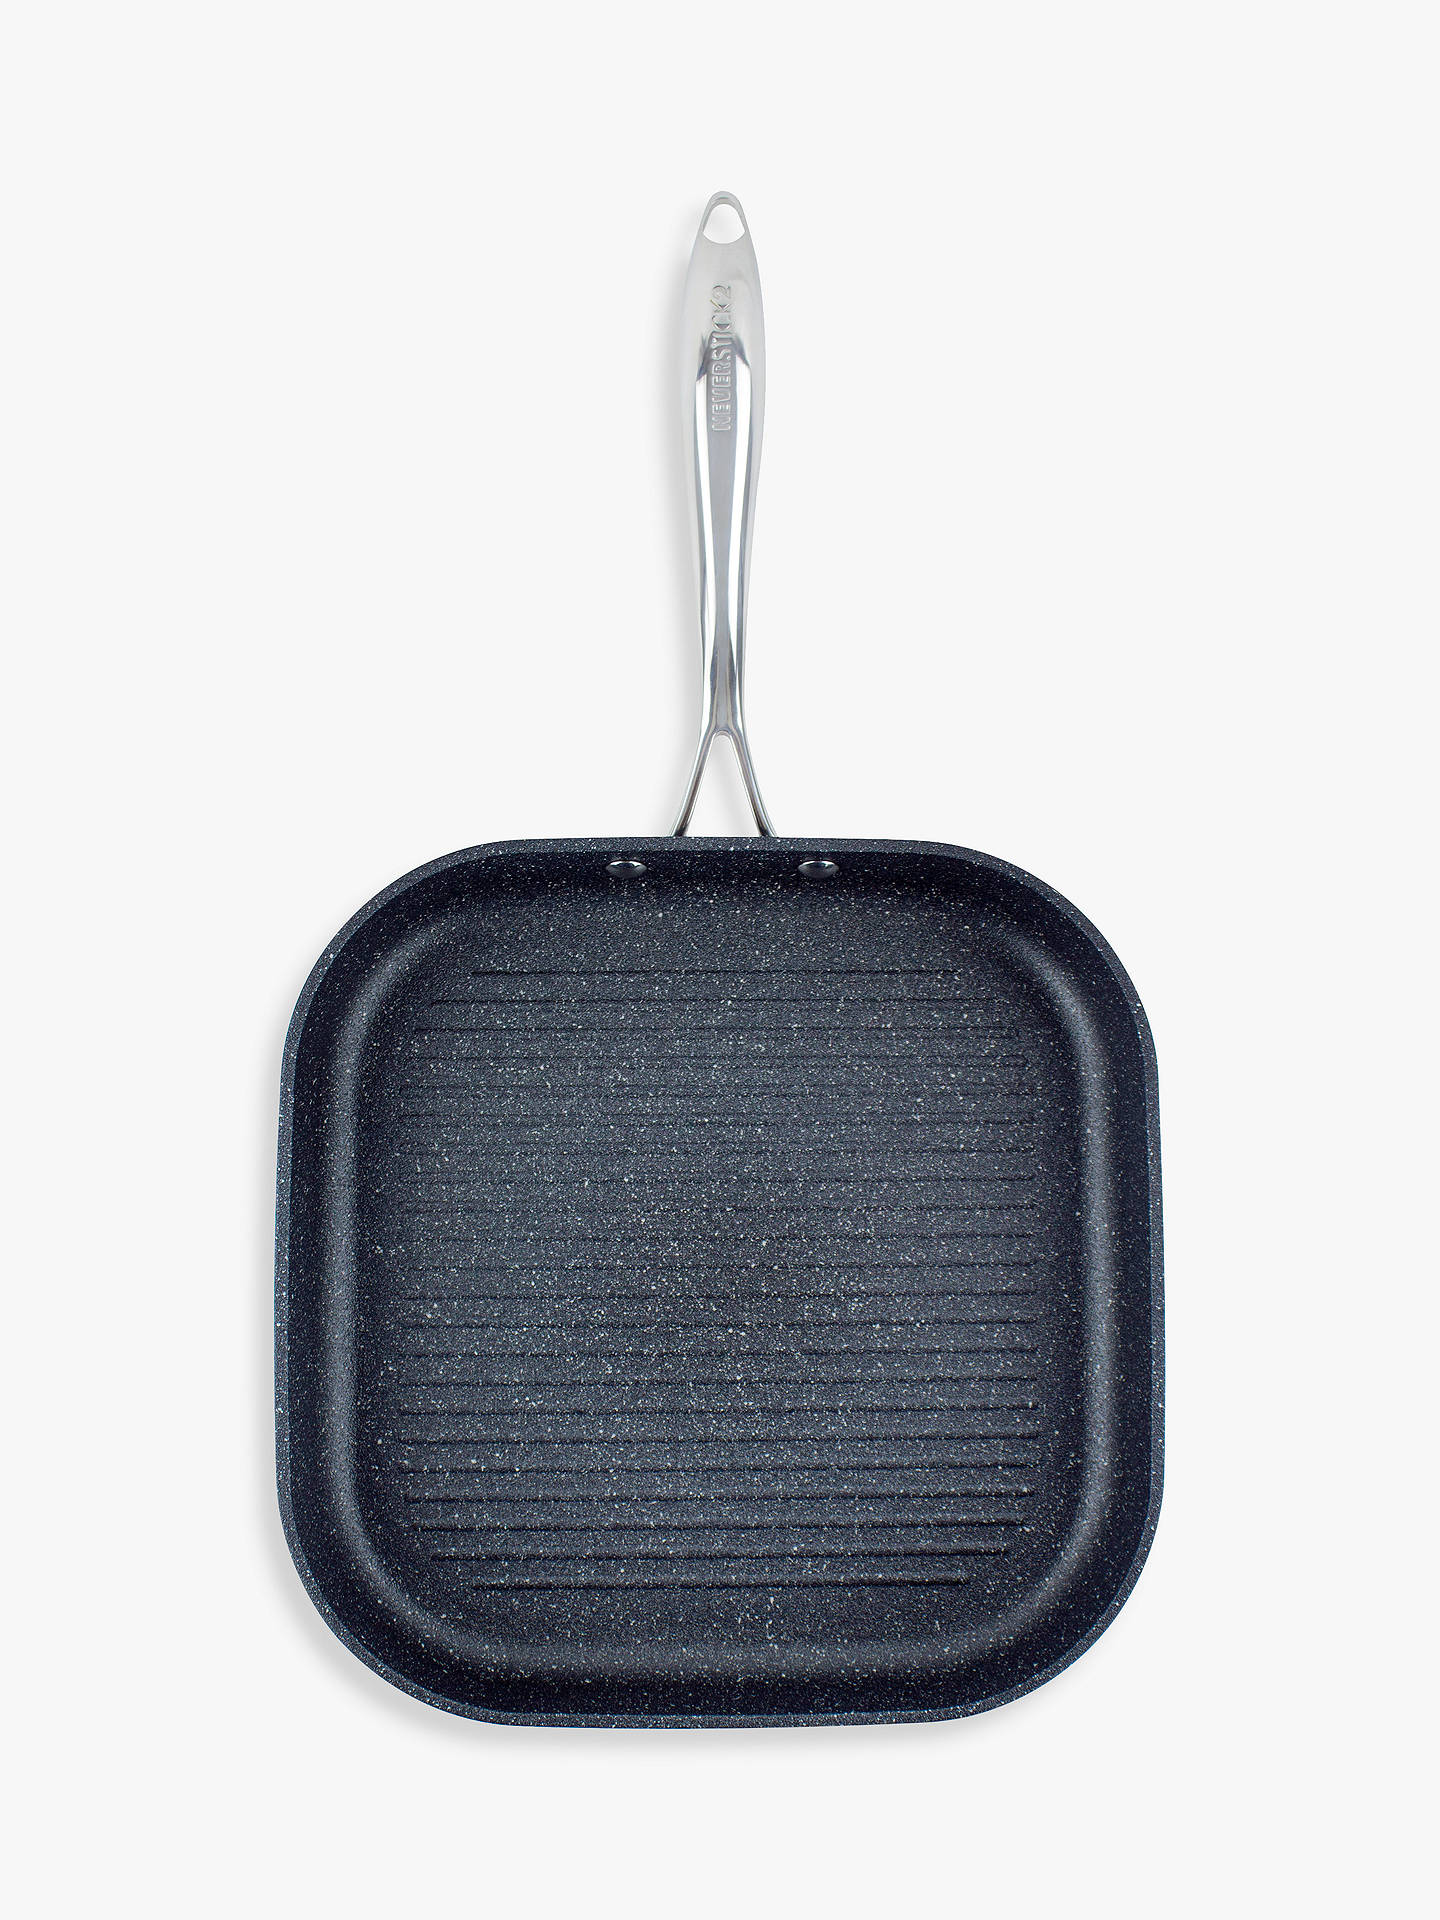 Buy Eaziglide Neverstick2 Non-Stick Square Grill Pan, 28cm Online at johnlewis.com